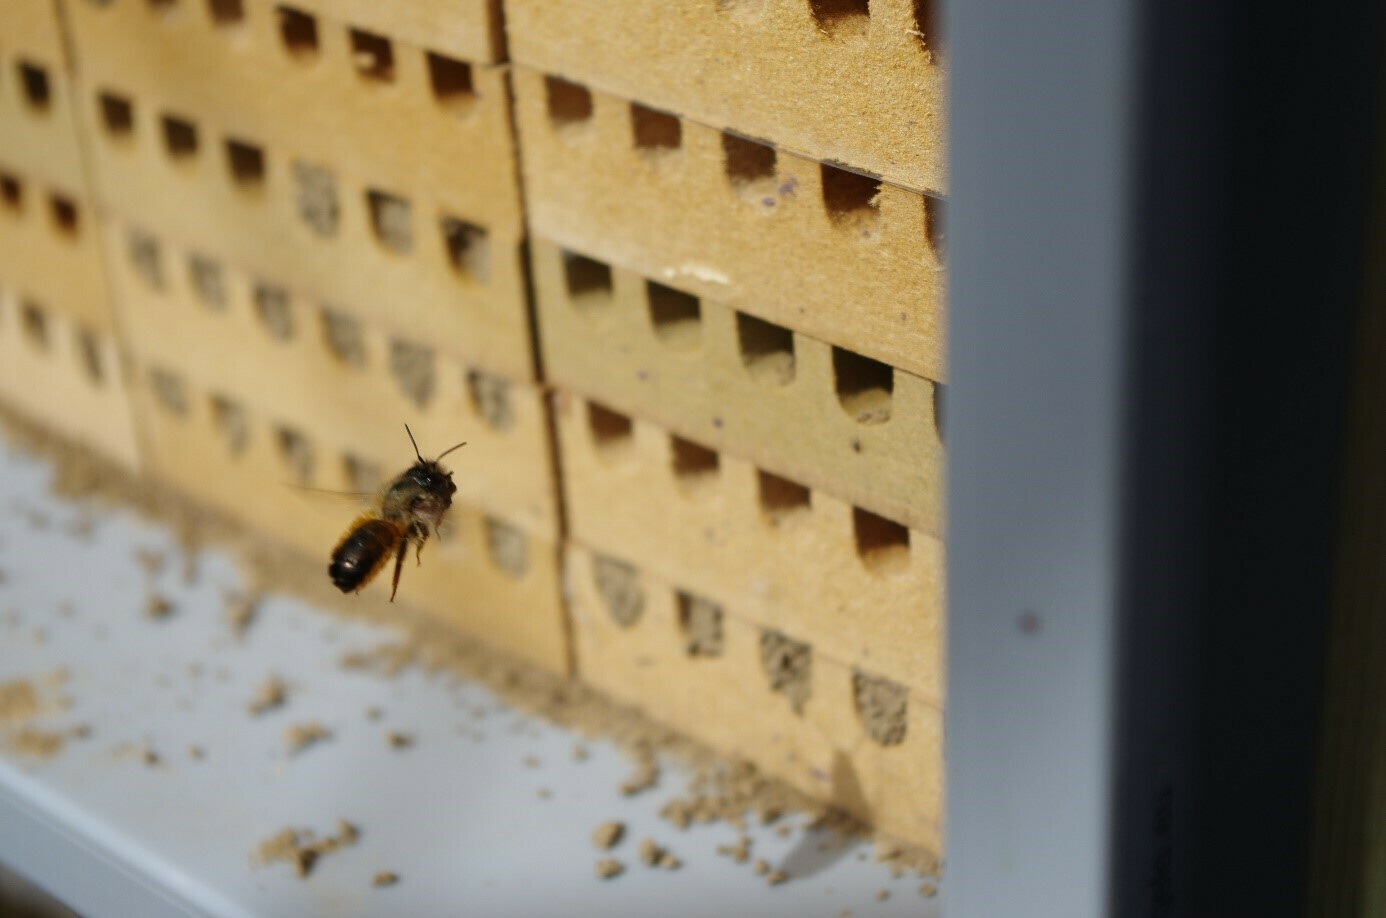 Female red mason bee approaching her nest